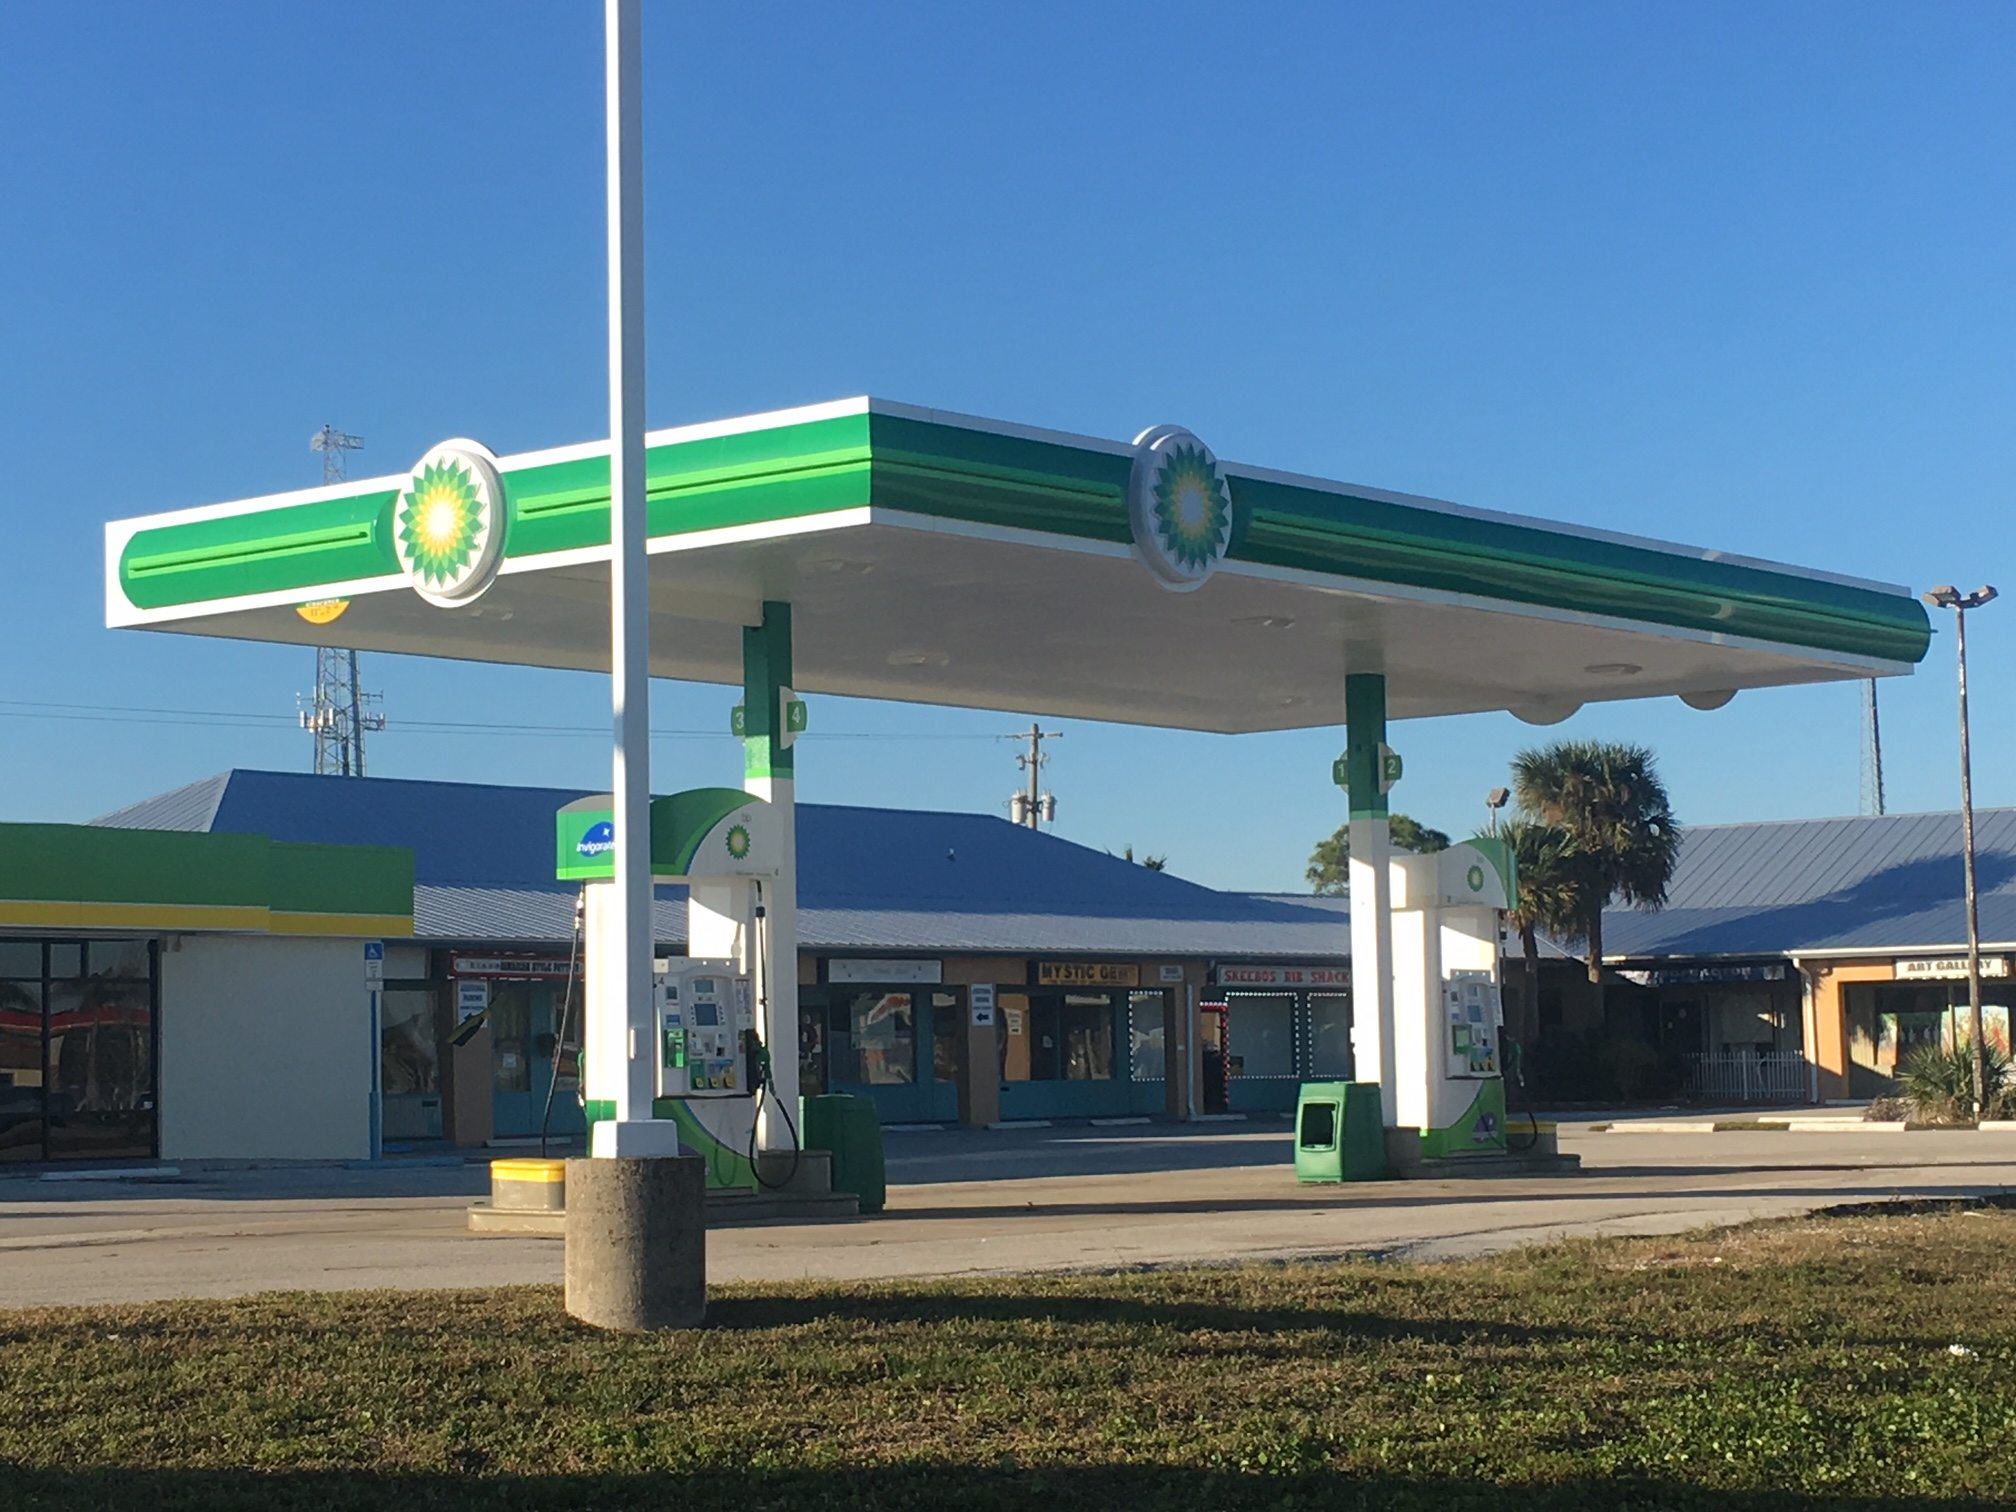 bp gas station business for lease convenience store harris ave palm